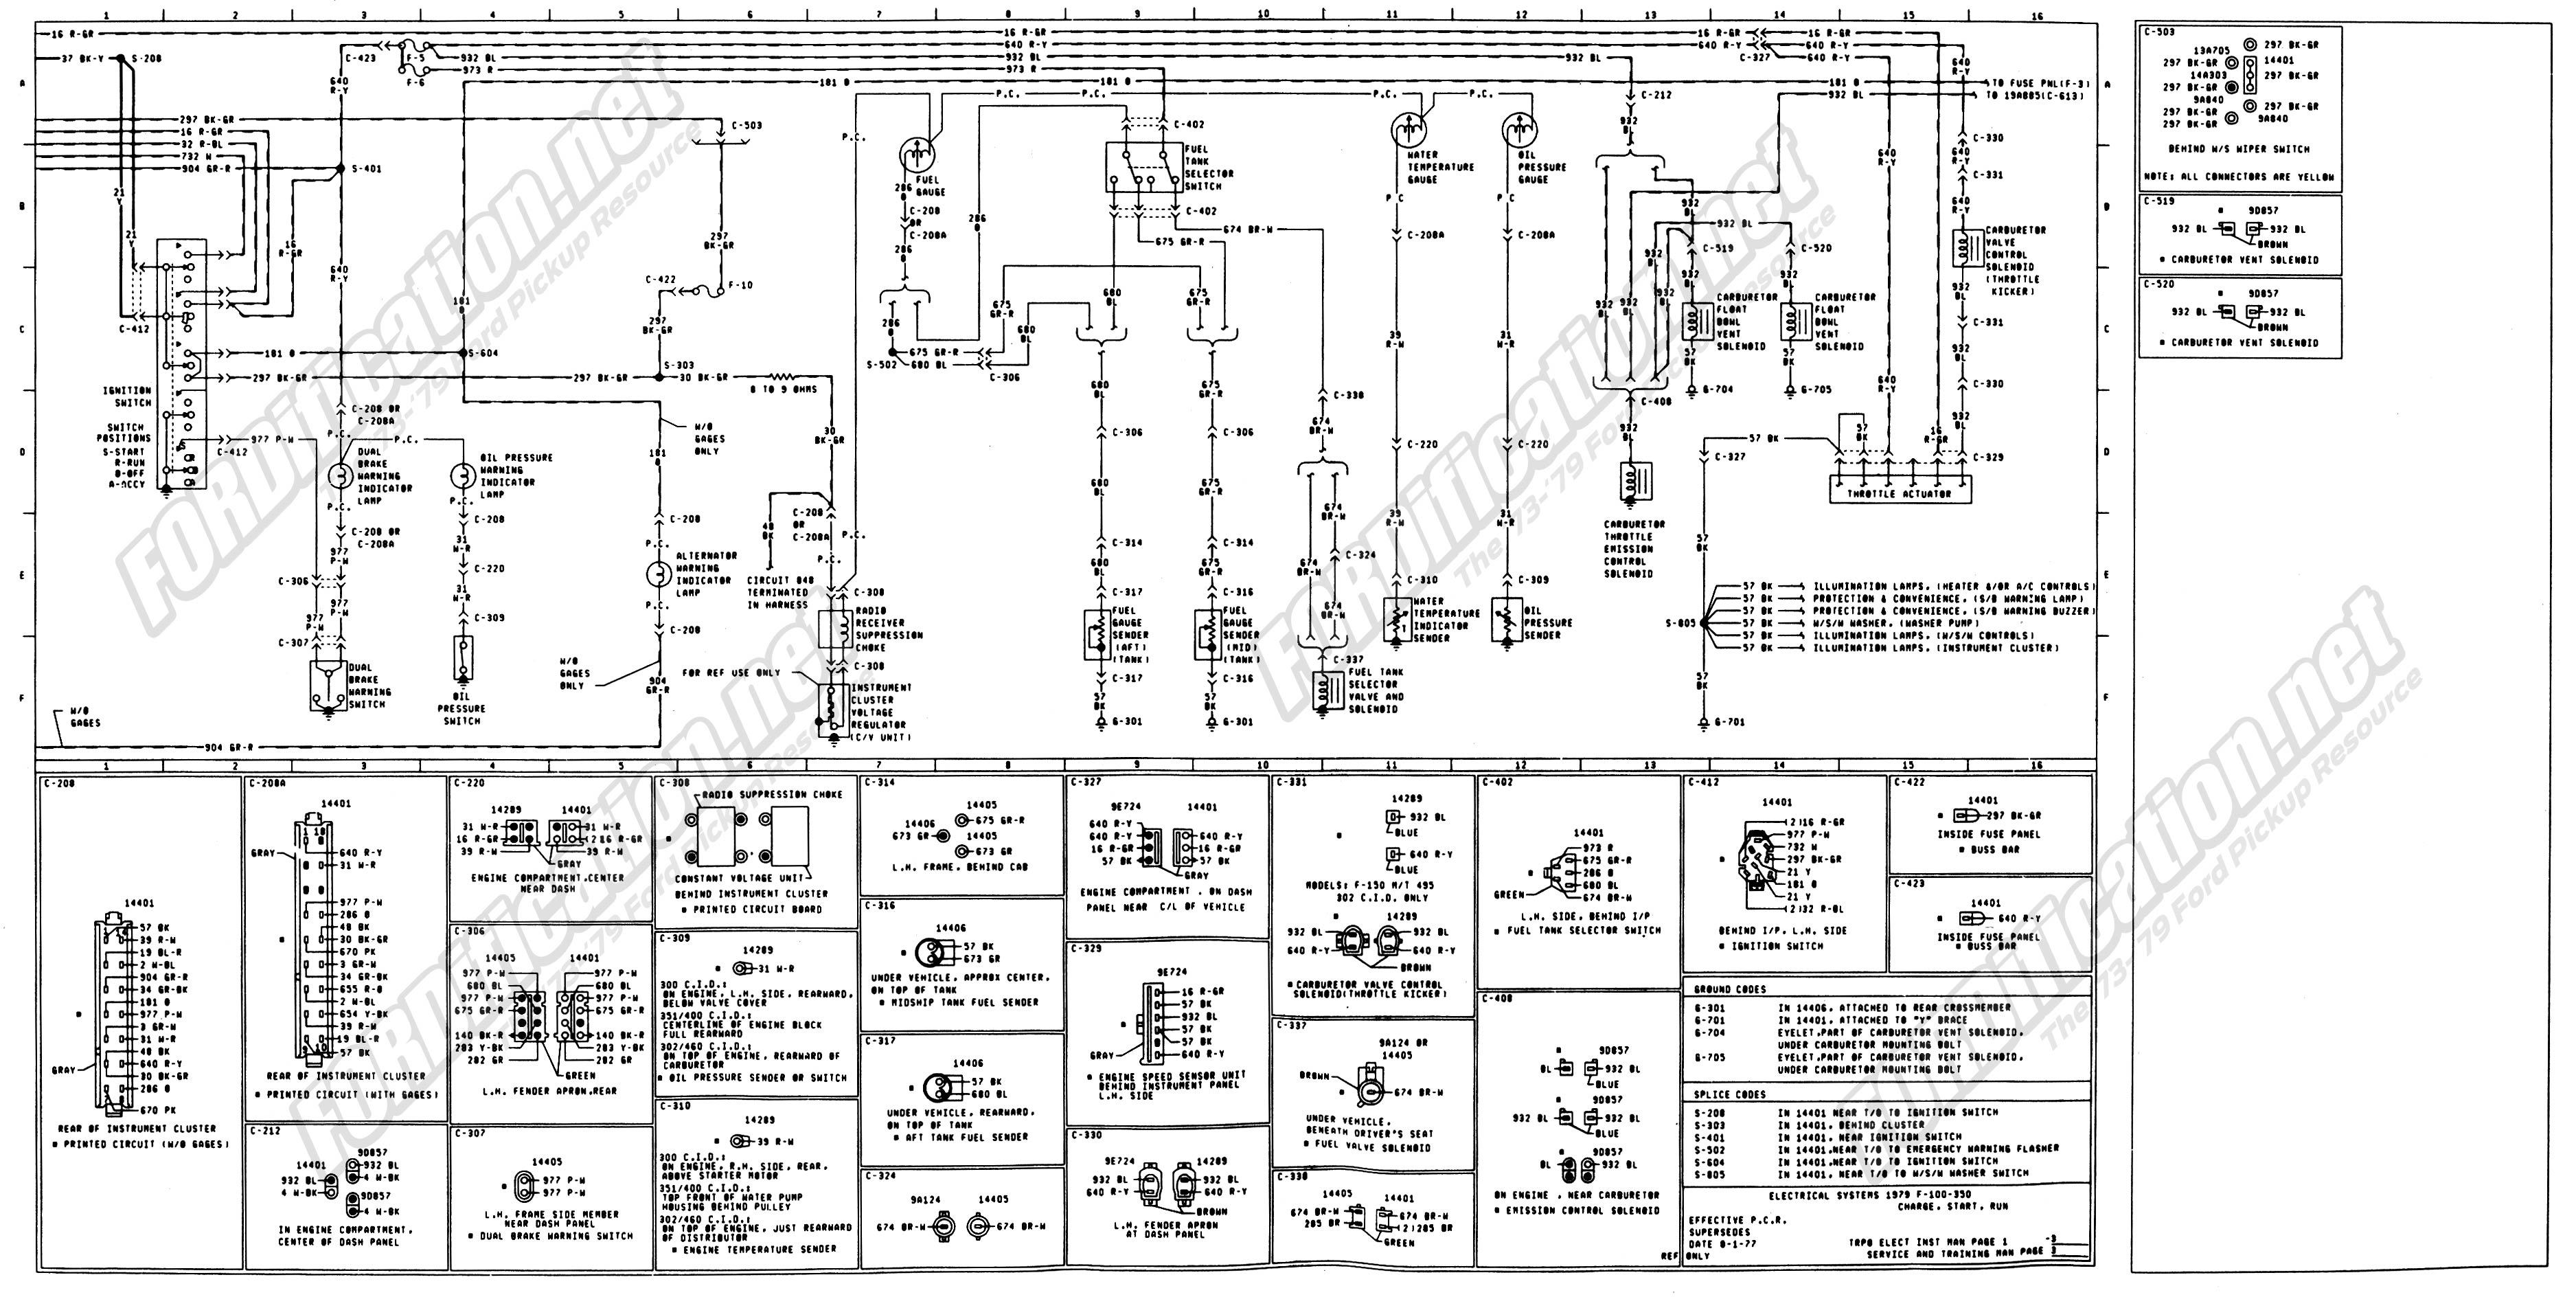 Turn Signal Wiring Diagram For 2002 Chevy S10 Pick Up Schematics 1957 Transmission Linkage Free Engine